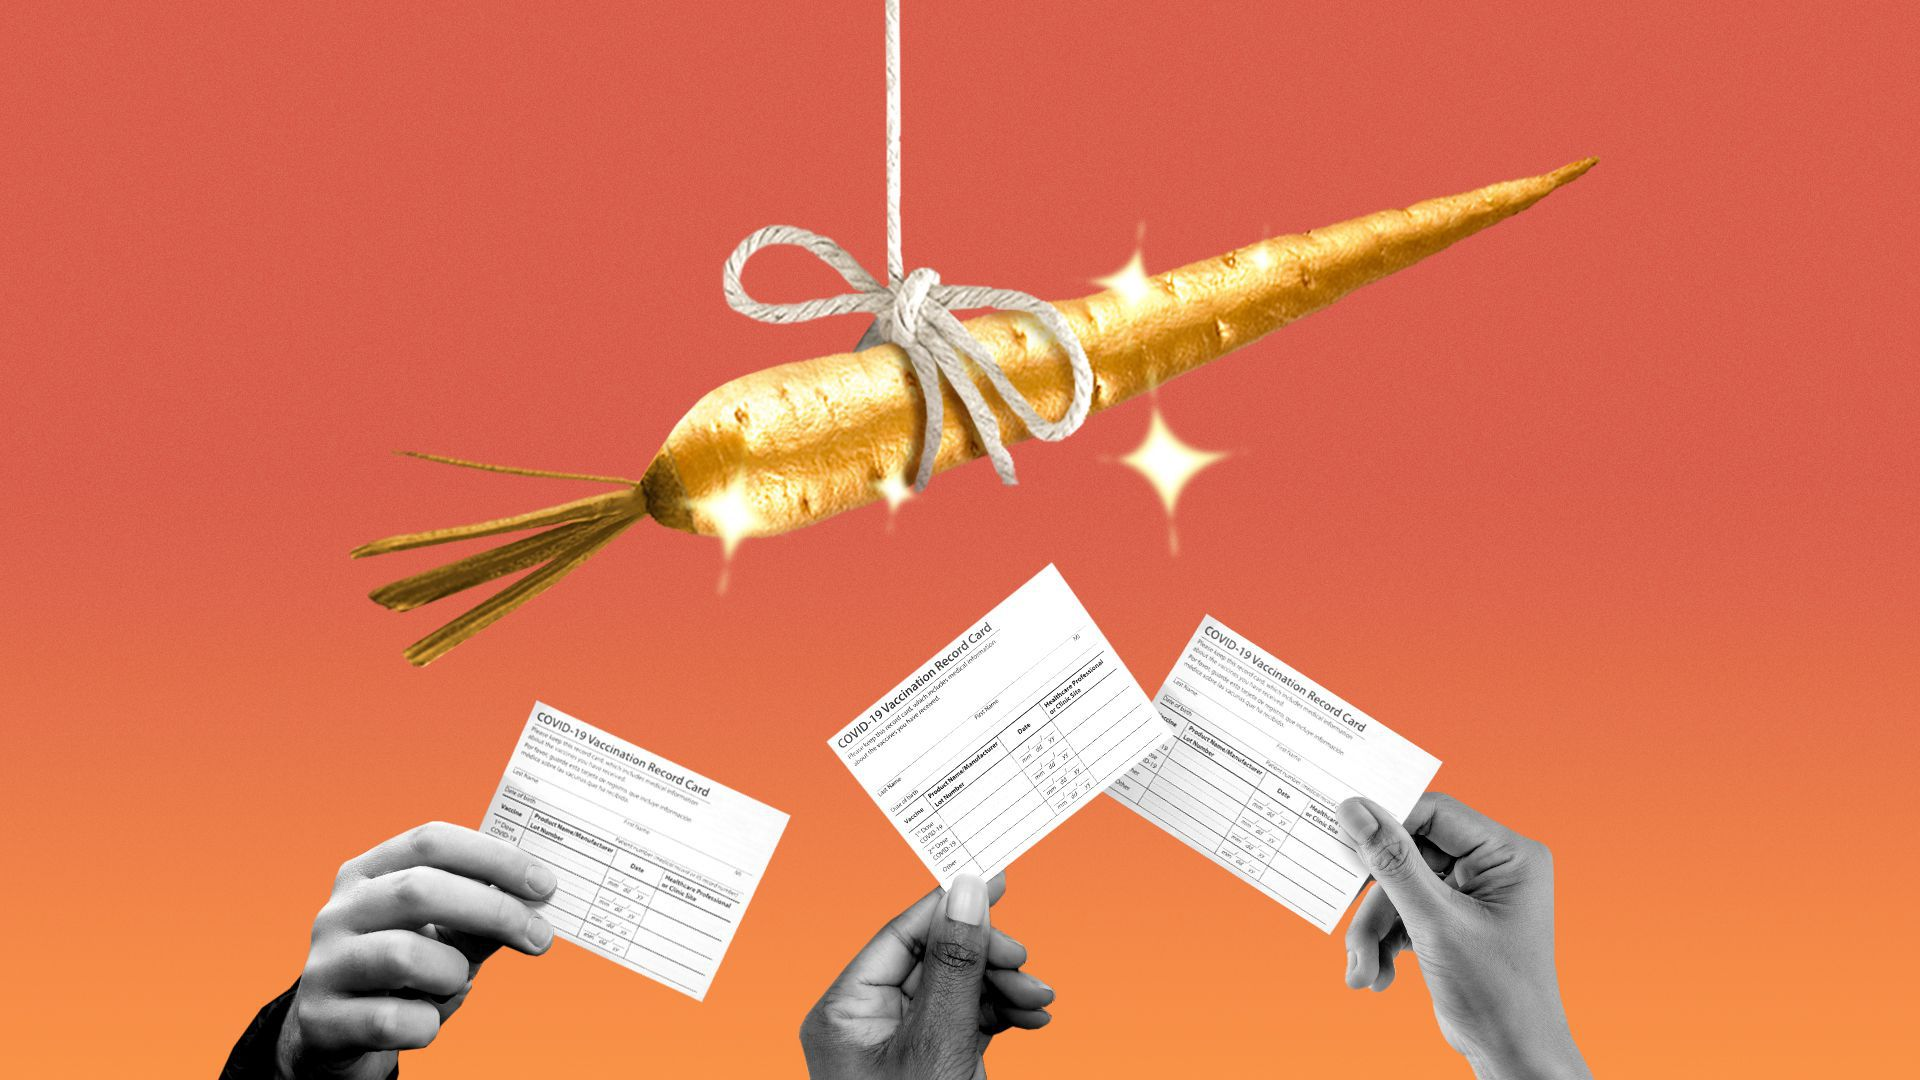 Illustration of three people's hands holding vaccine cards up towards a dangling golden carrot